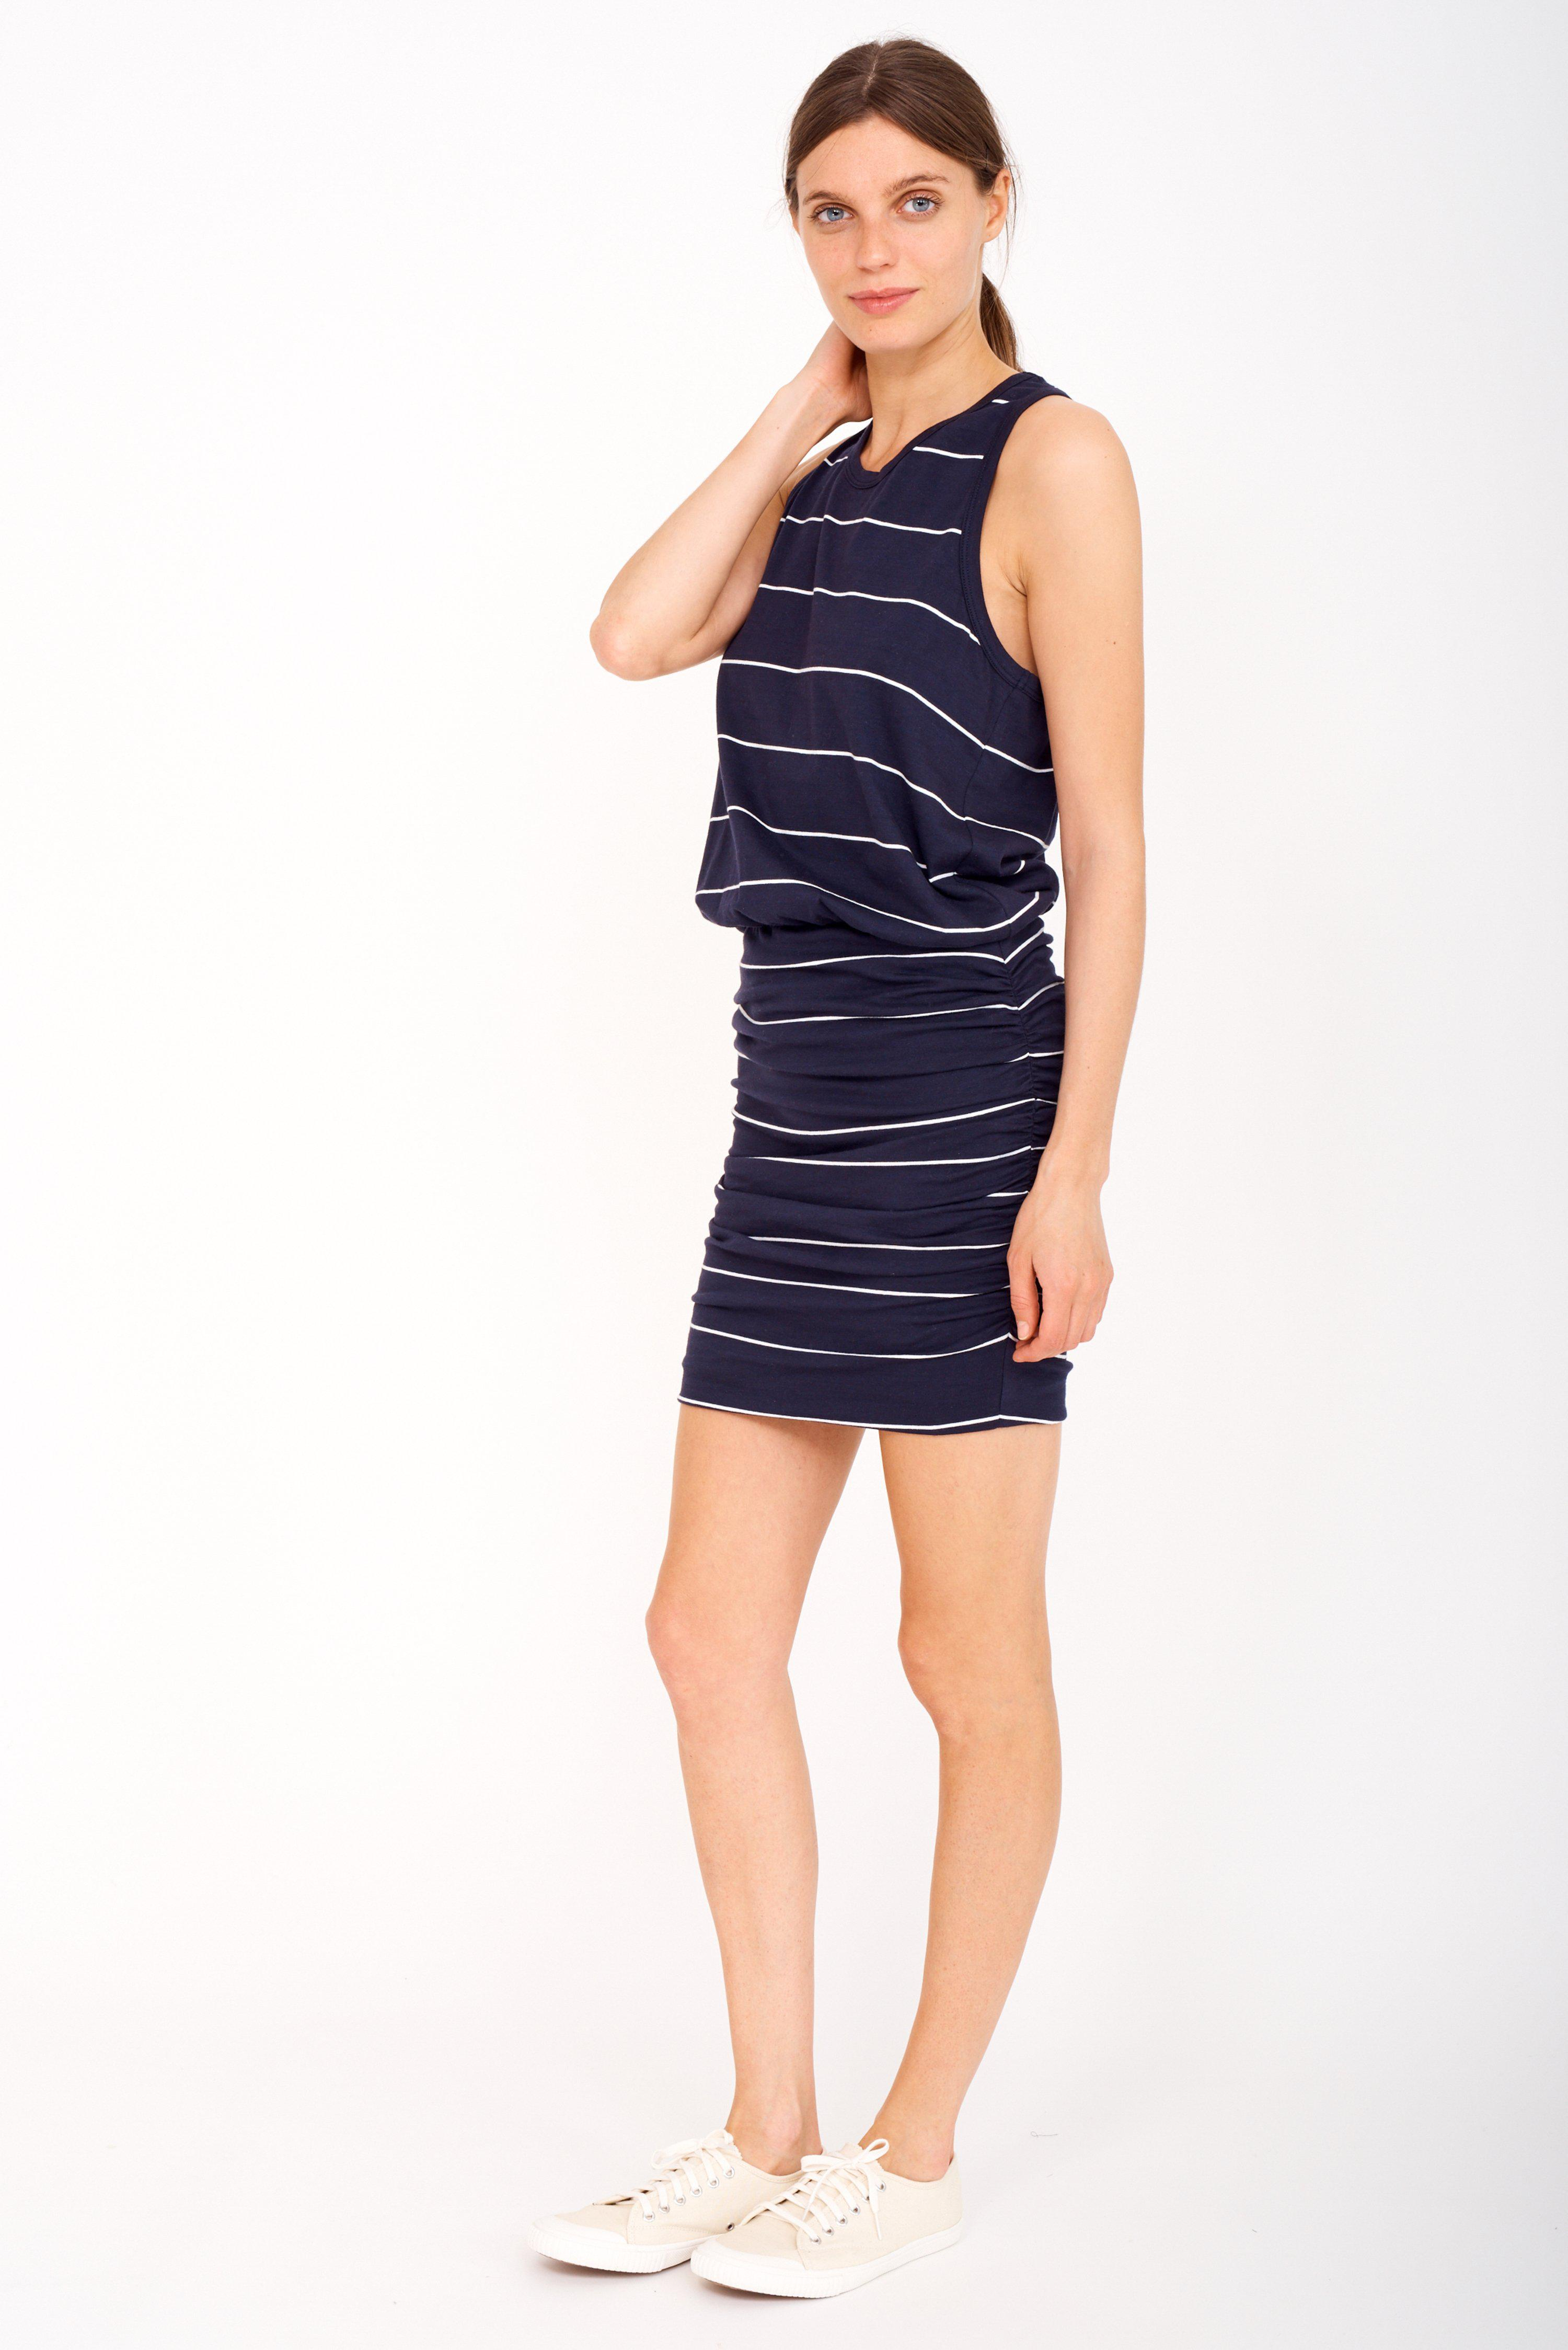 fbe58640ad589 Gallery. Previously sold at  Sundry Clothing · Women s Elastic Waist Dresses  Women s Striped ...